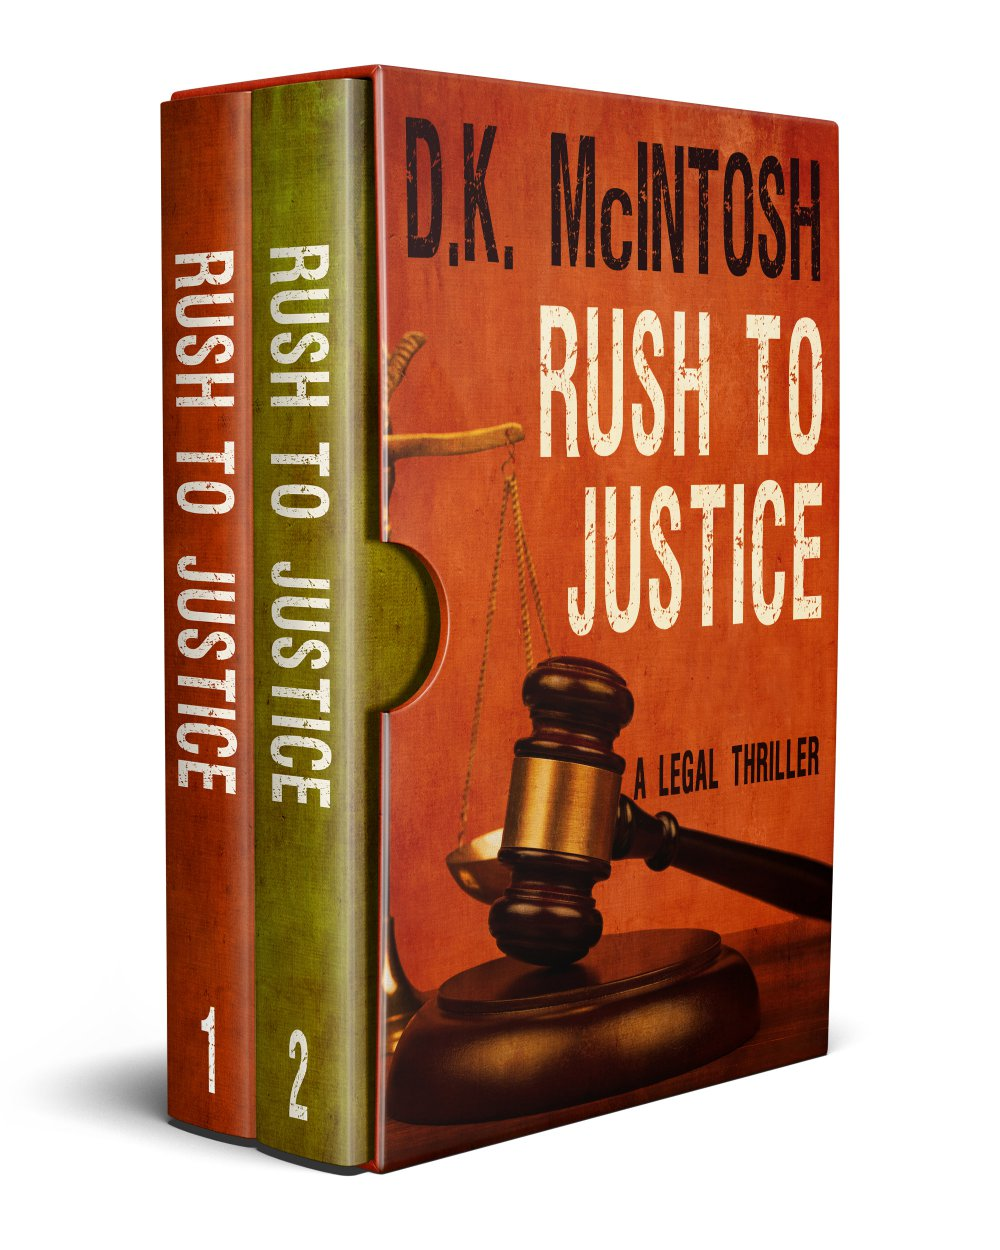 Rush To Justice Books 1 & 2